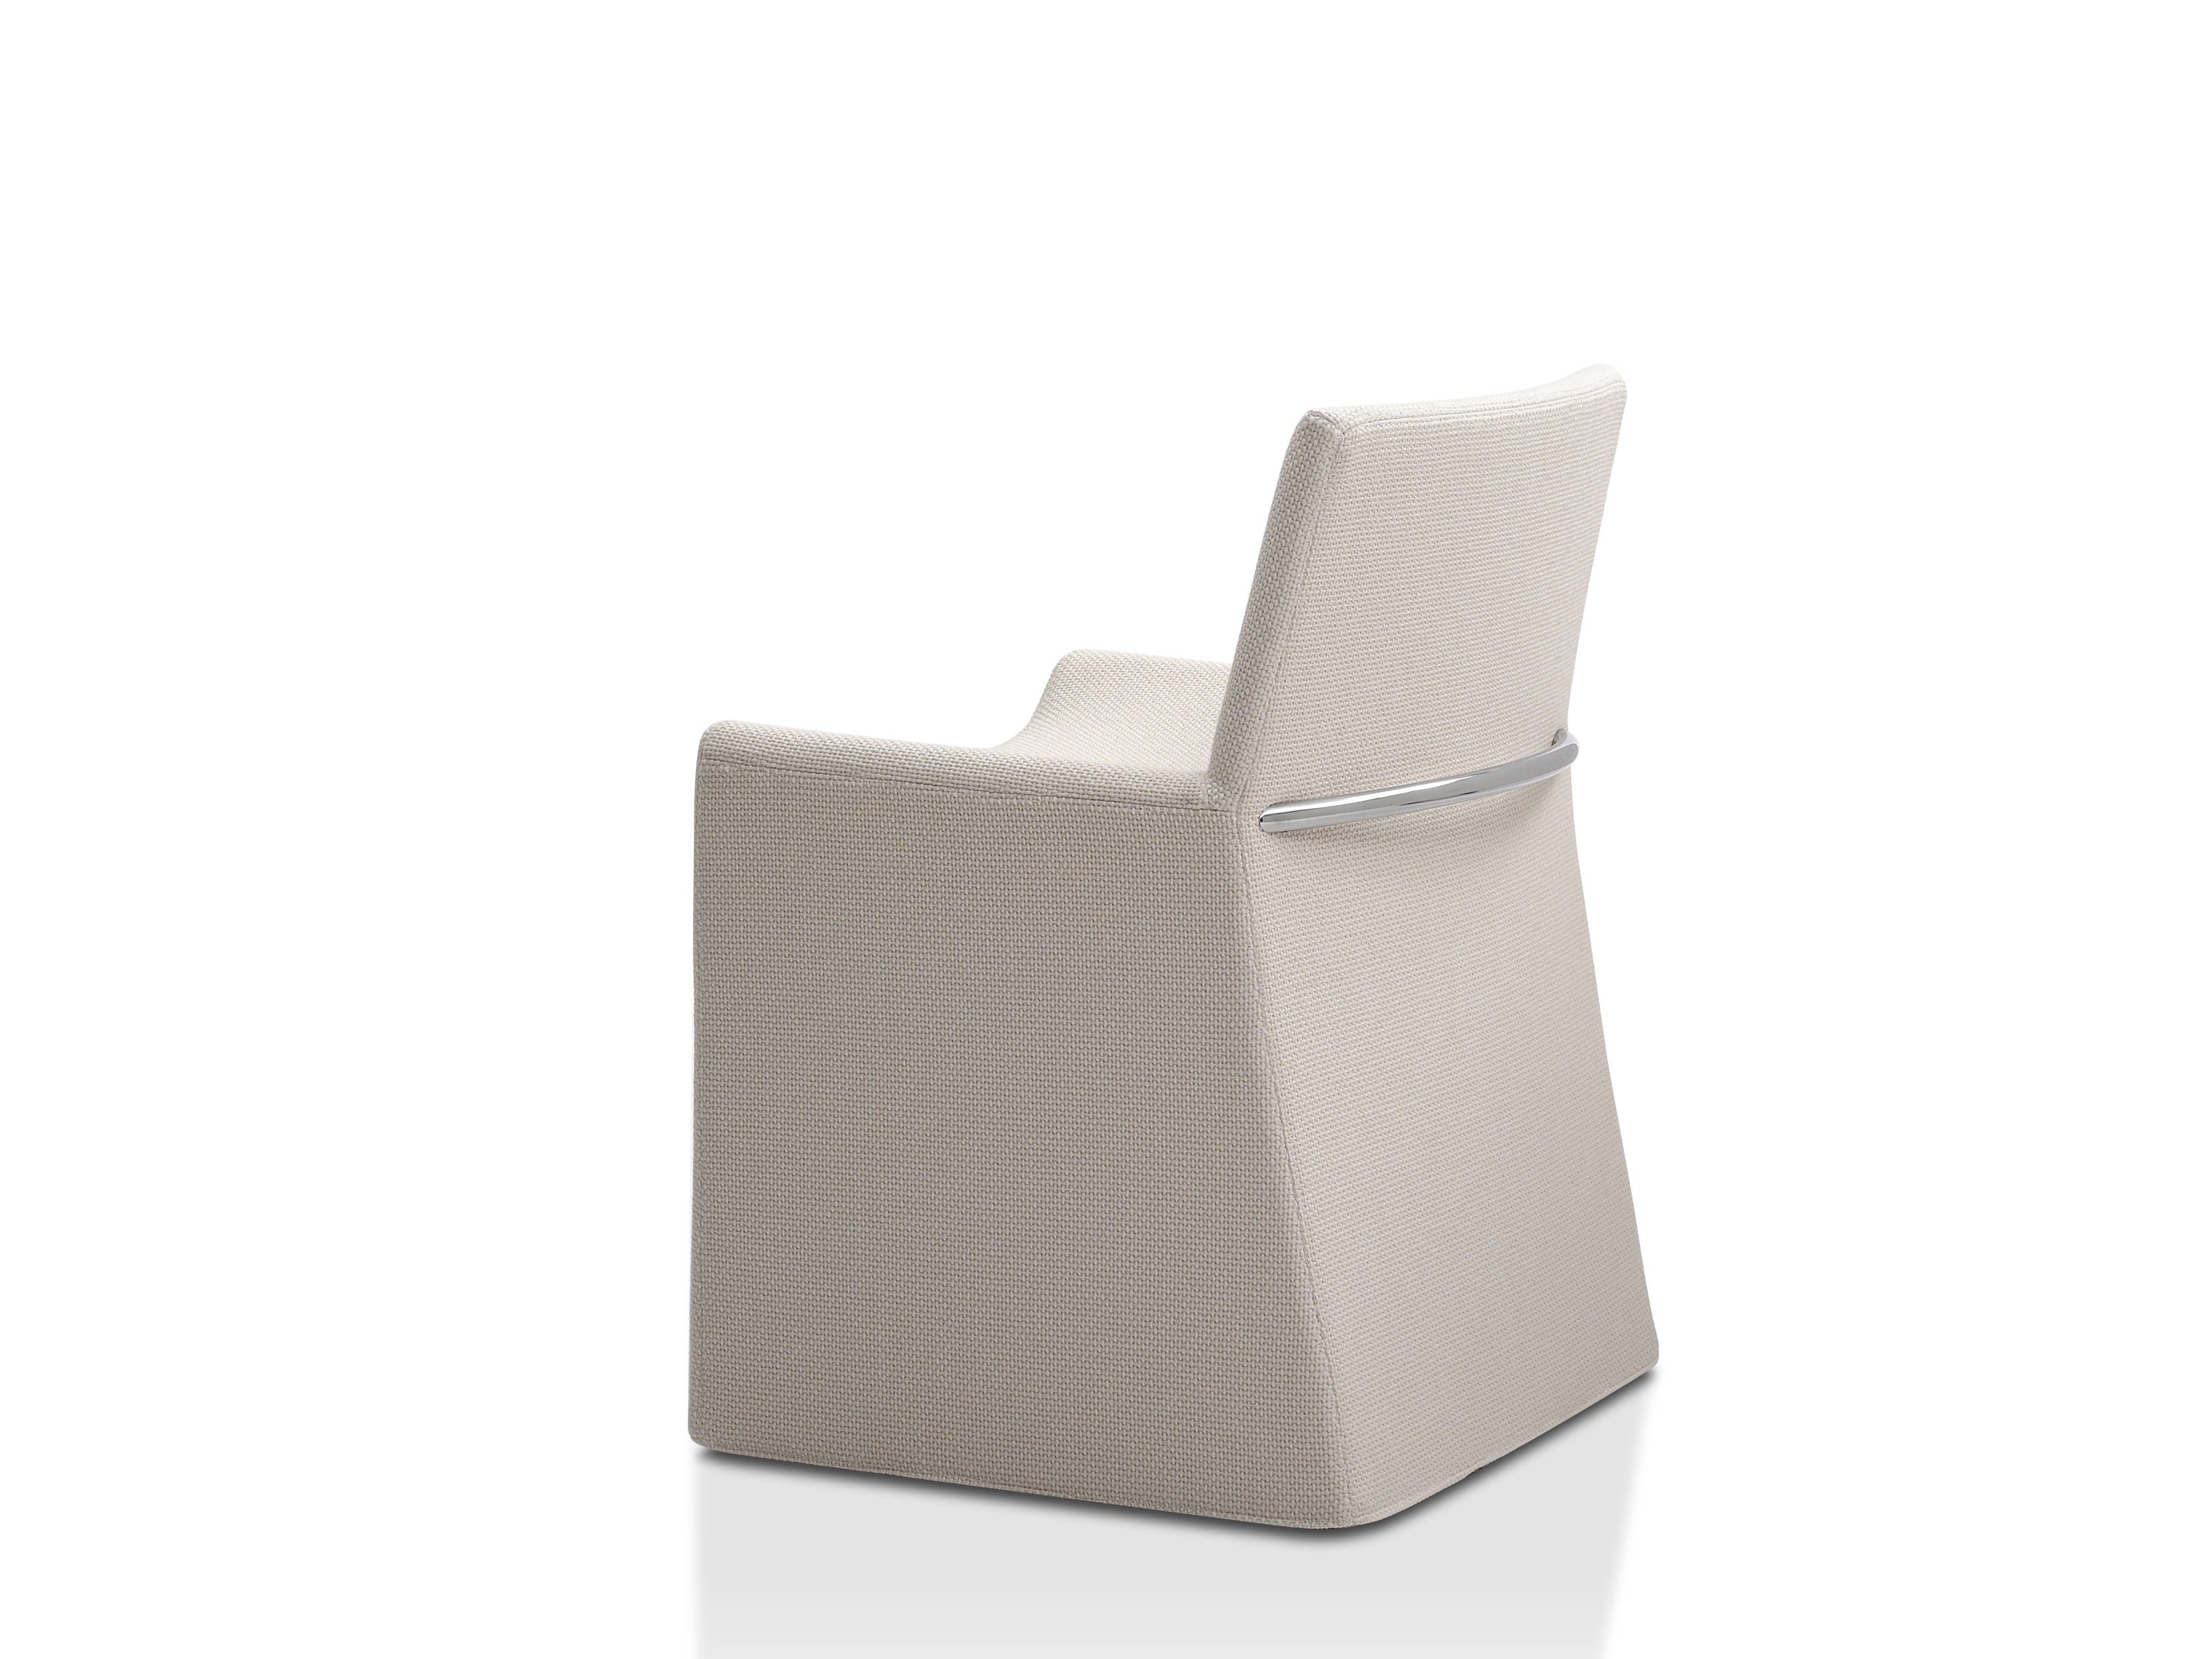 Porro, image:prodotti - Porro Spa - Soft Chair